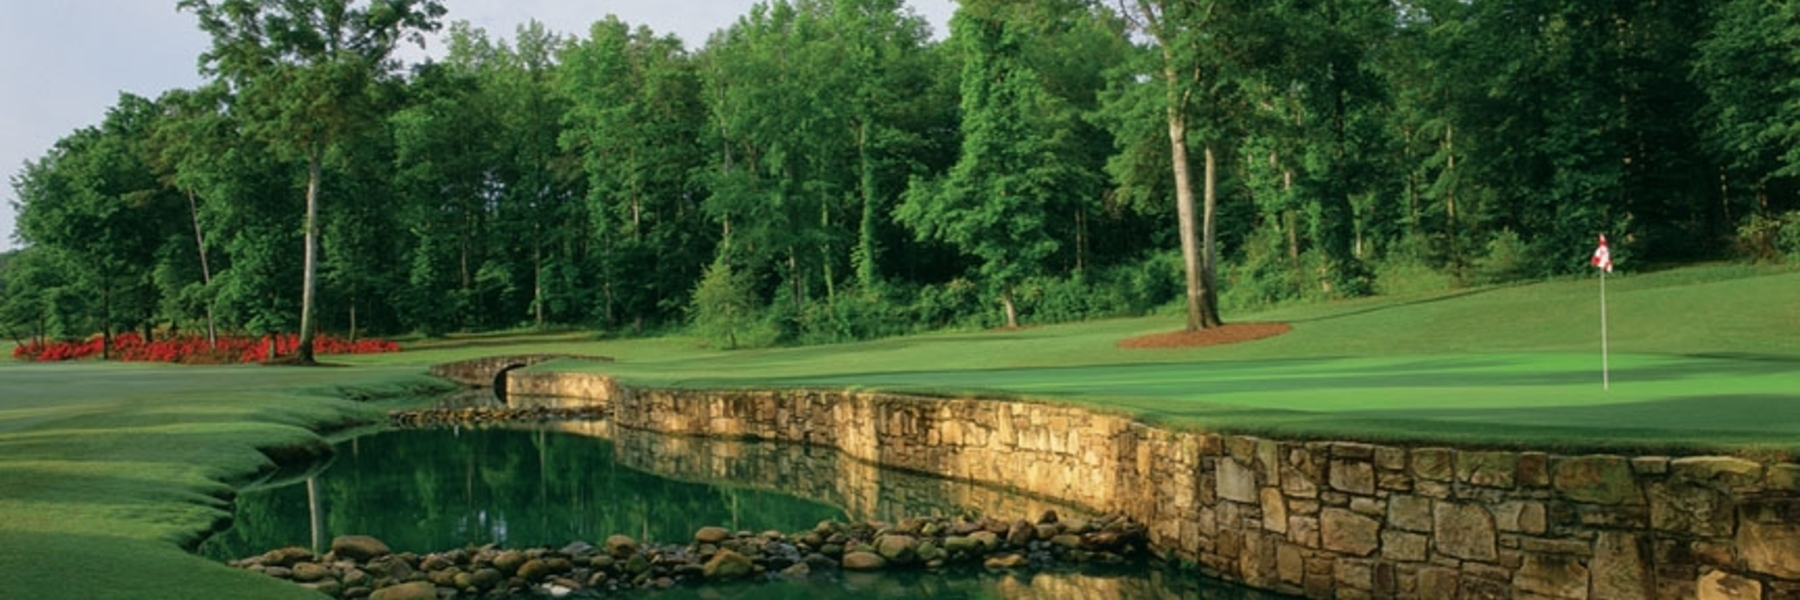 Golf Vacation Package - Unbeatable Fall Deal on Reynolds Stay and Play!